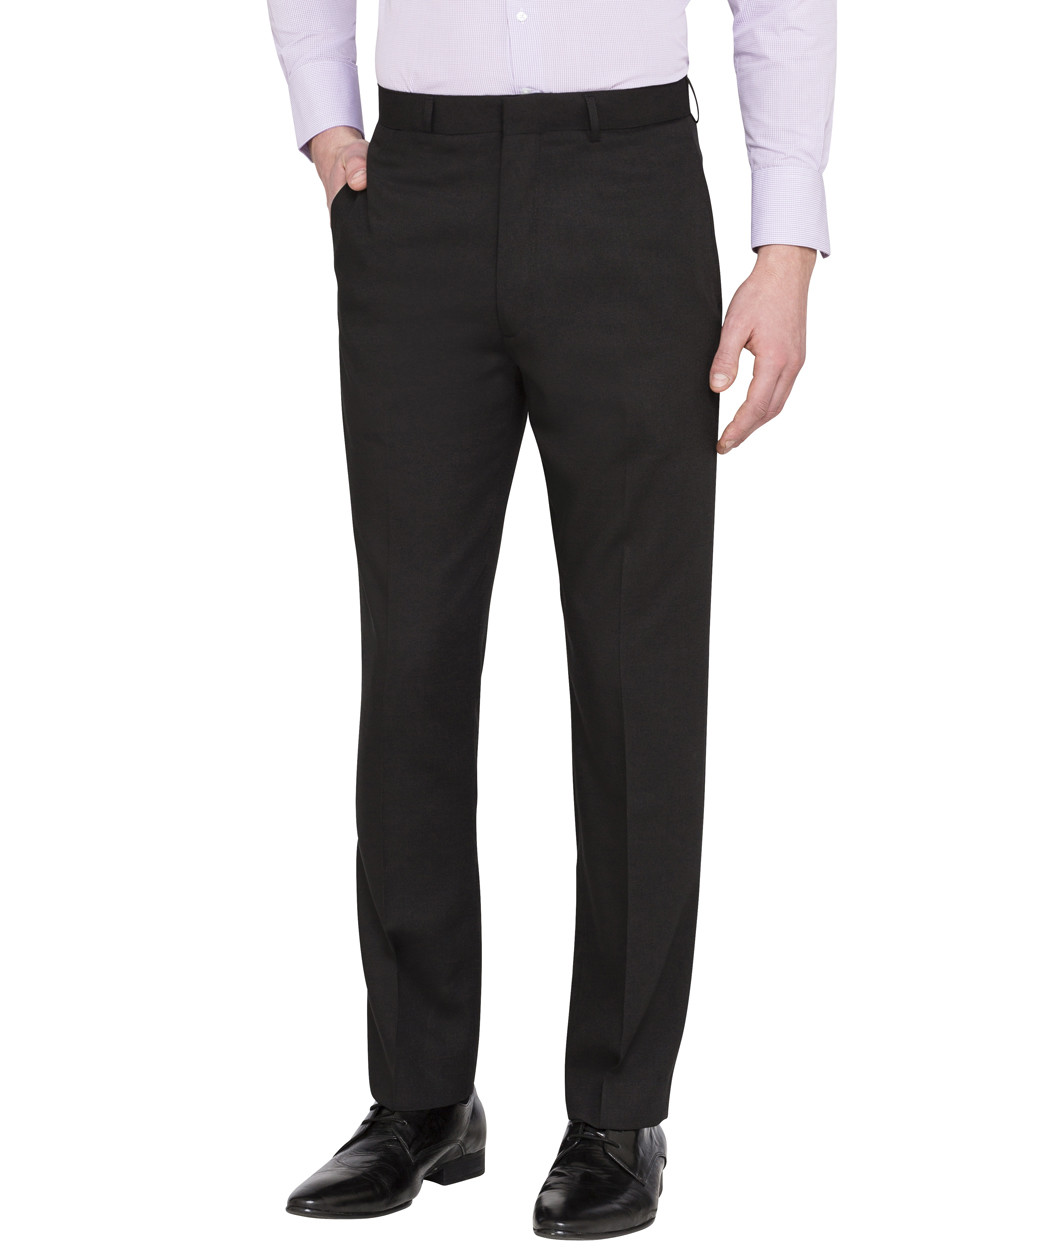 fefbe4bdc Classic Relaxed Fit Business Trousers Black